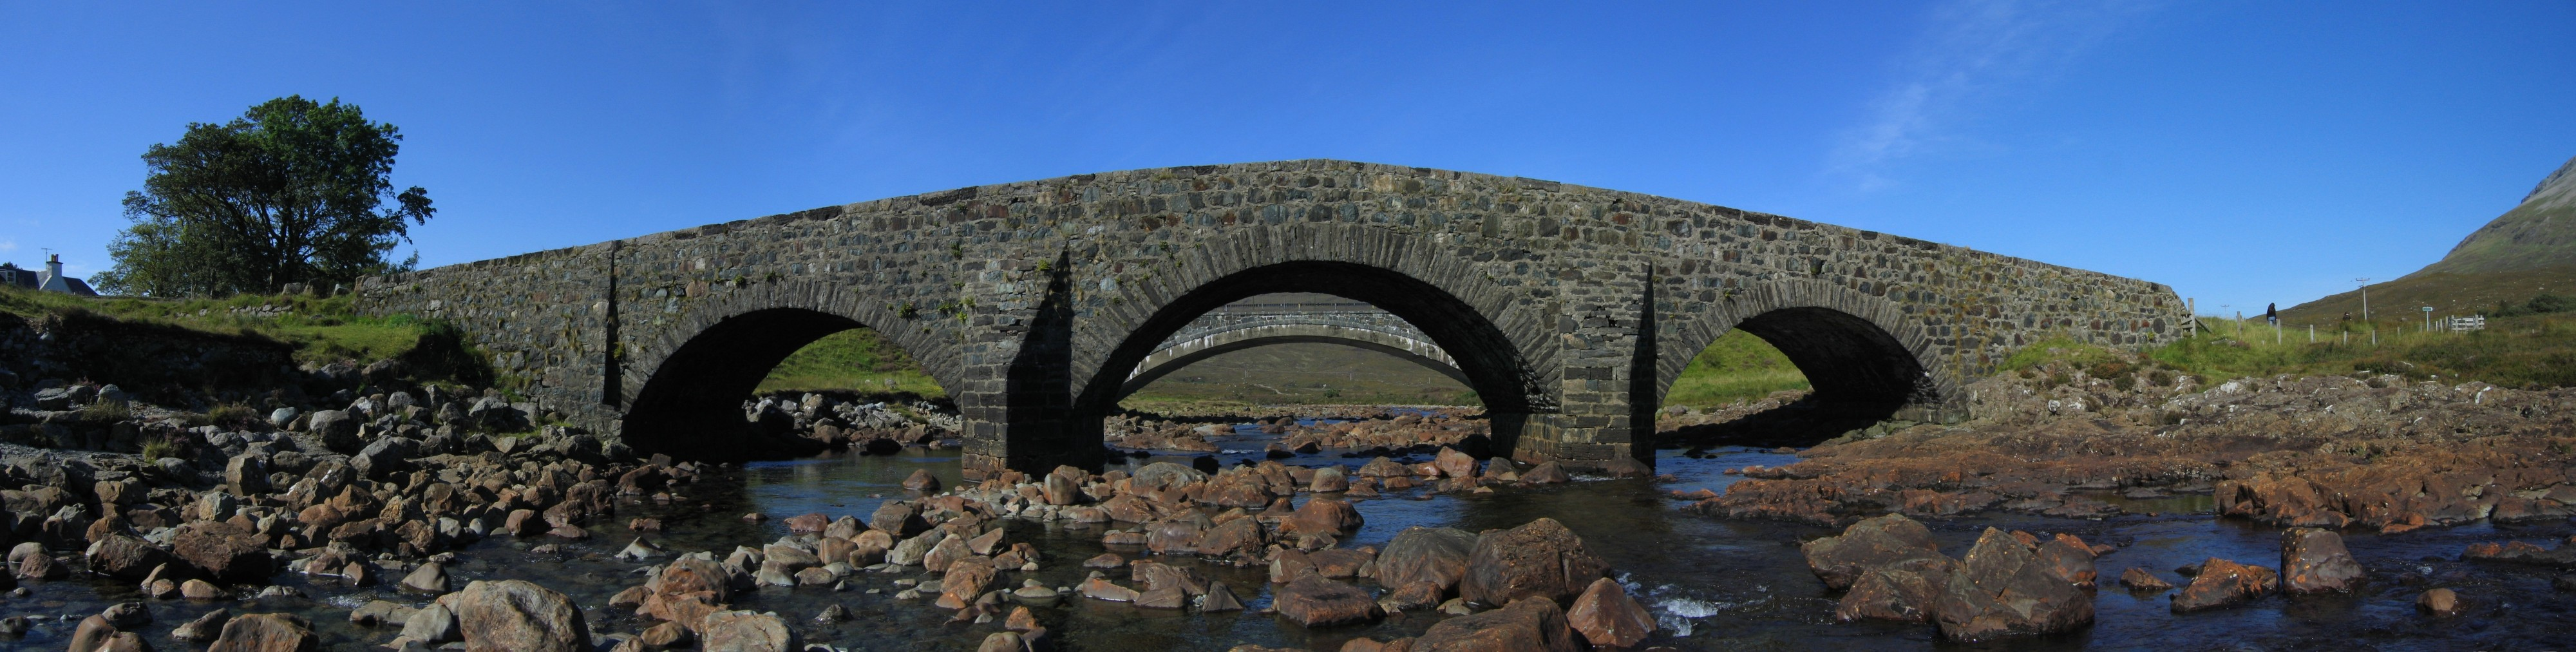 Sligachan Bridge1 2007-08-22